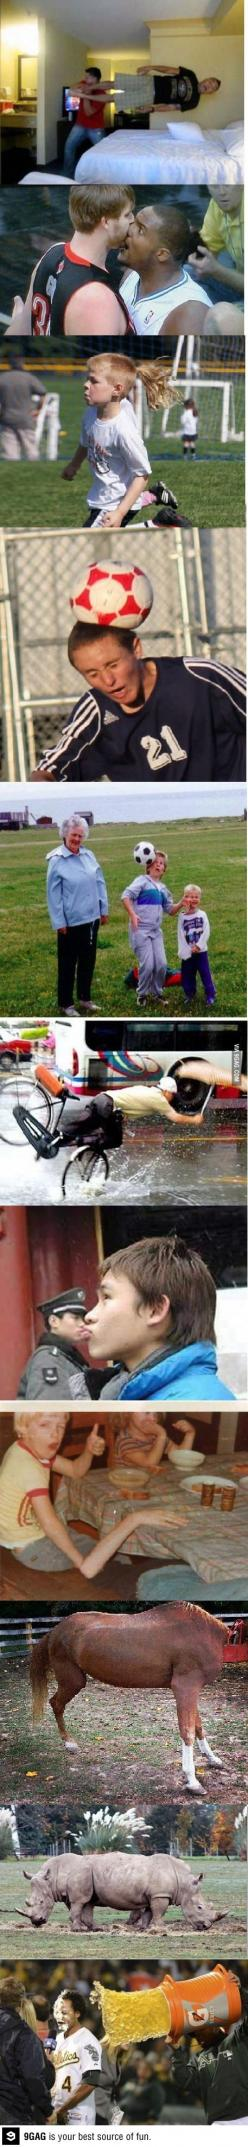 Some Perfectly Timed Photos: Timed Pictures, Kids Arm, I M Laughing, Kids Dental, Funny Stuff, Www Kidsdentalcenter Com, Epicaly Timed, Timed Photos Lol, Perfectly Timed Photos